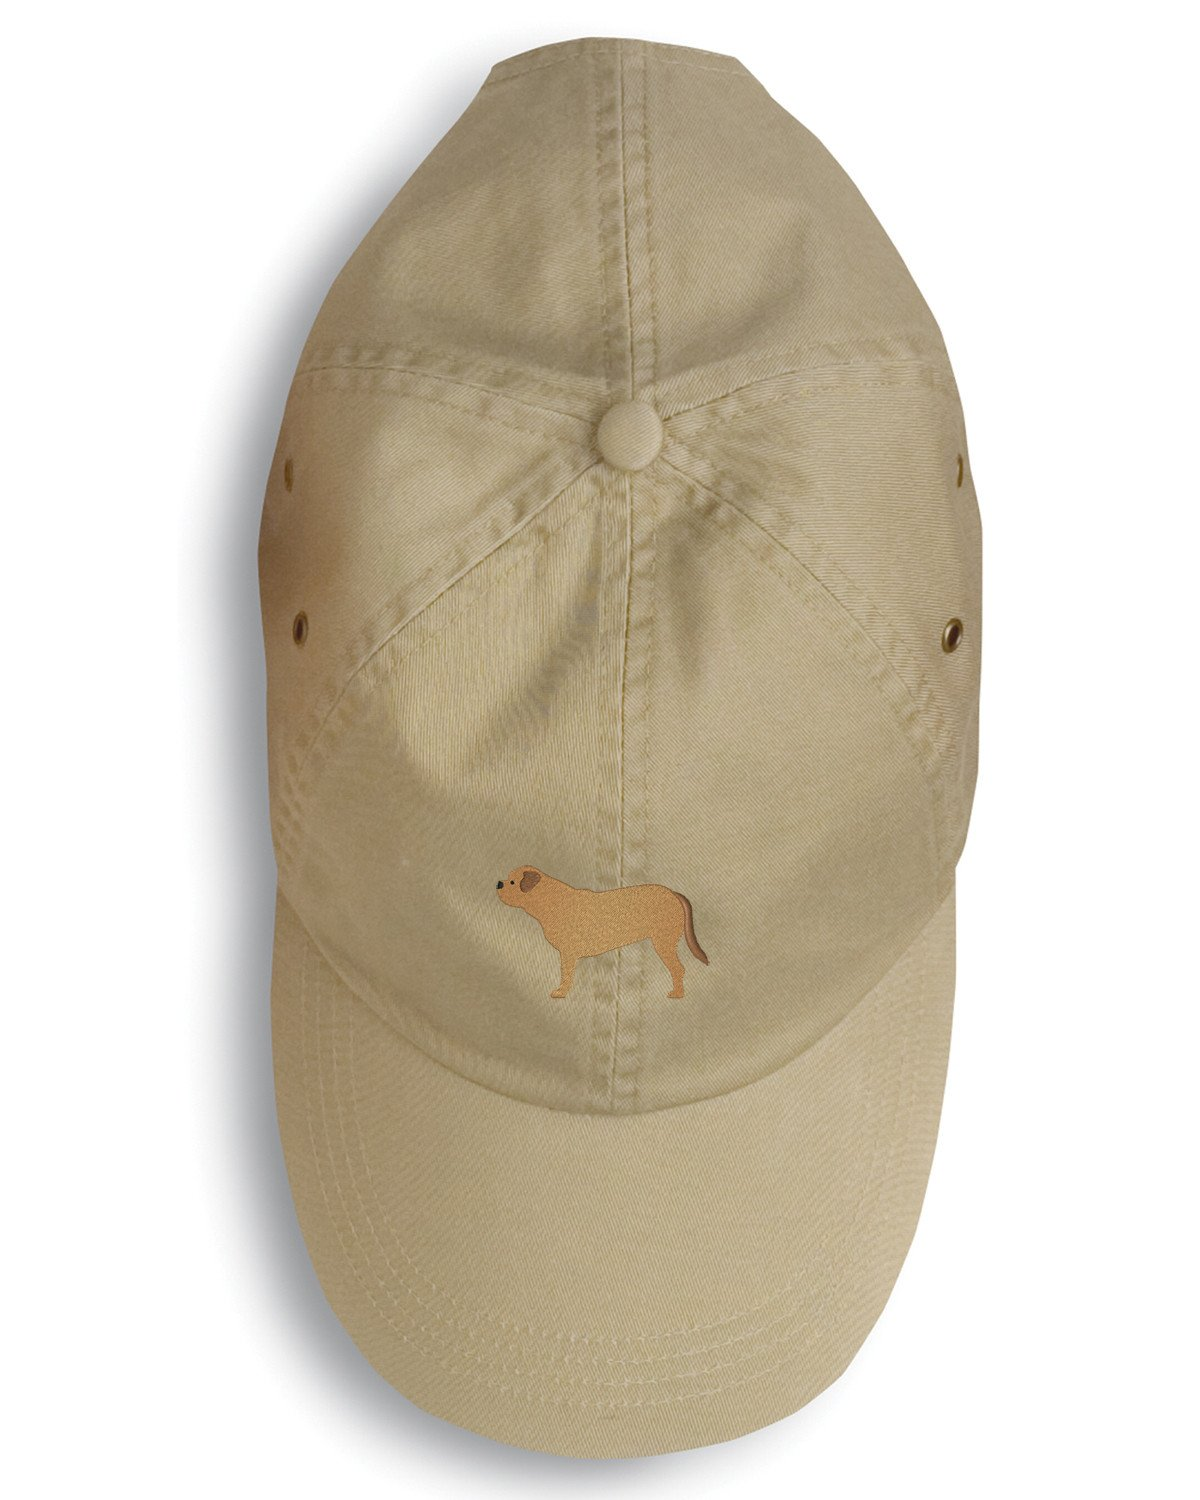 Dogue de Bordeaux Embroidered Baseball Cap BB3470BU-156 by Caroline's Treasures